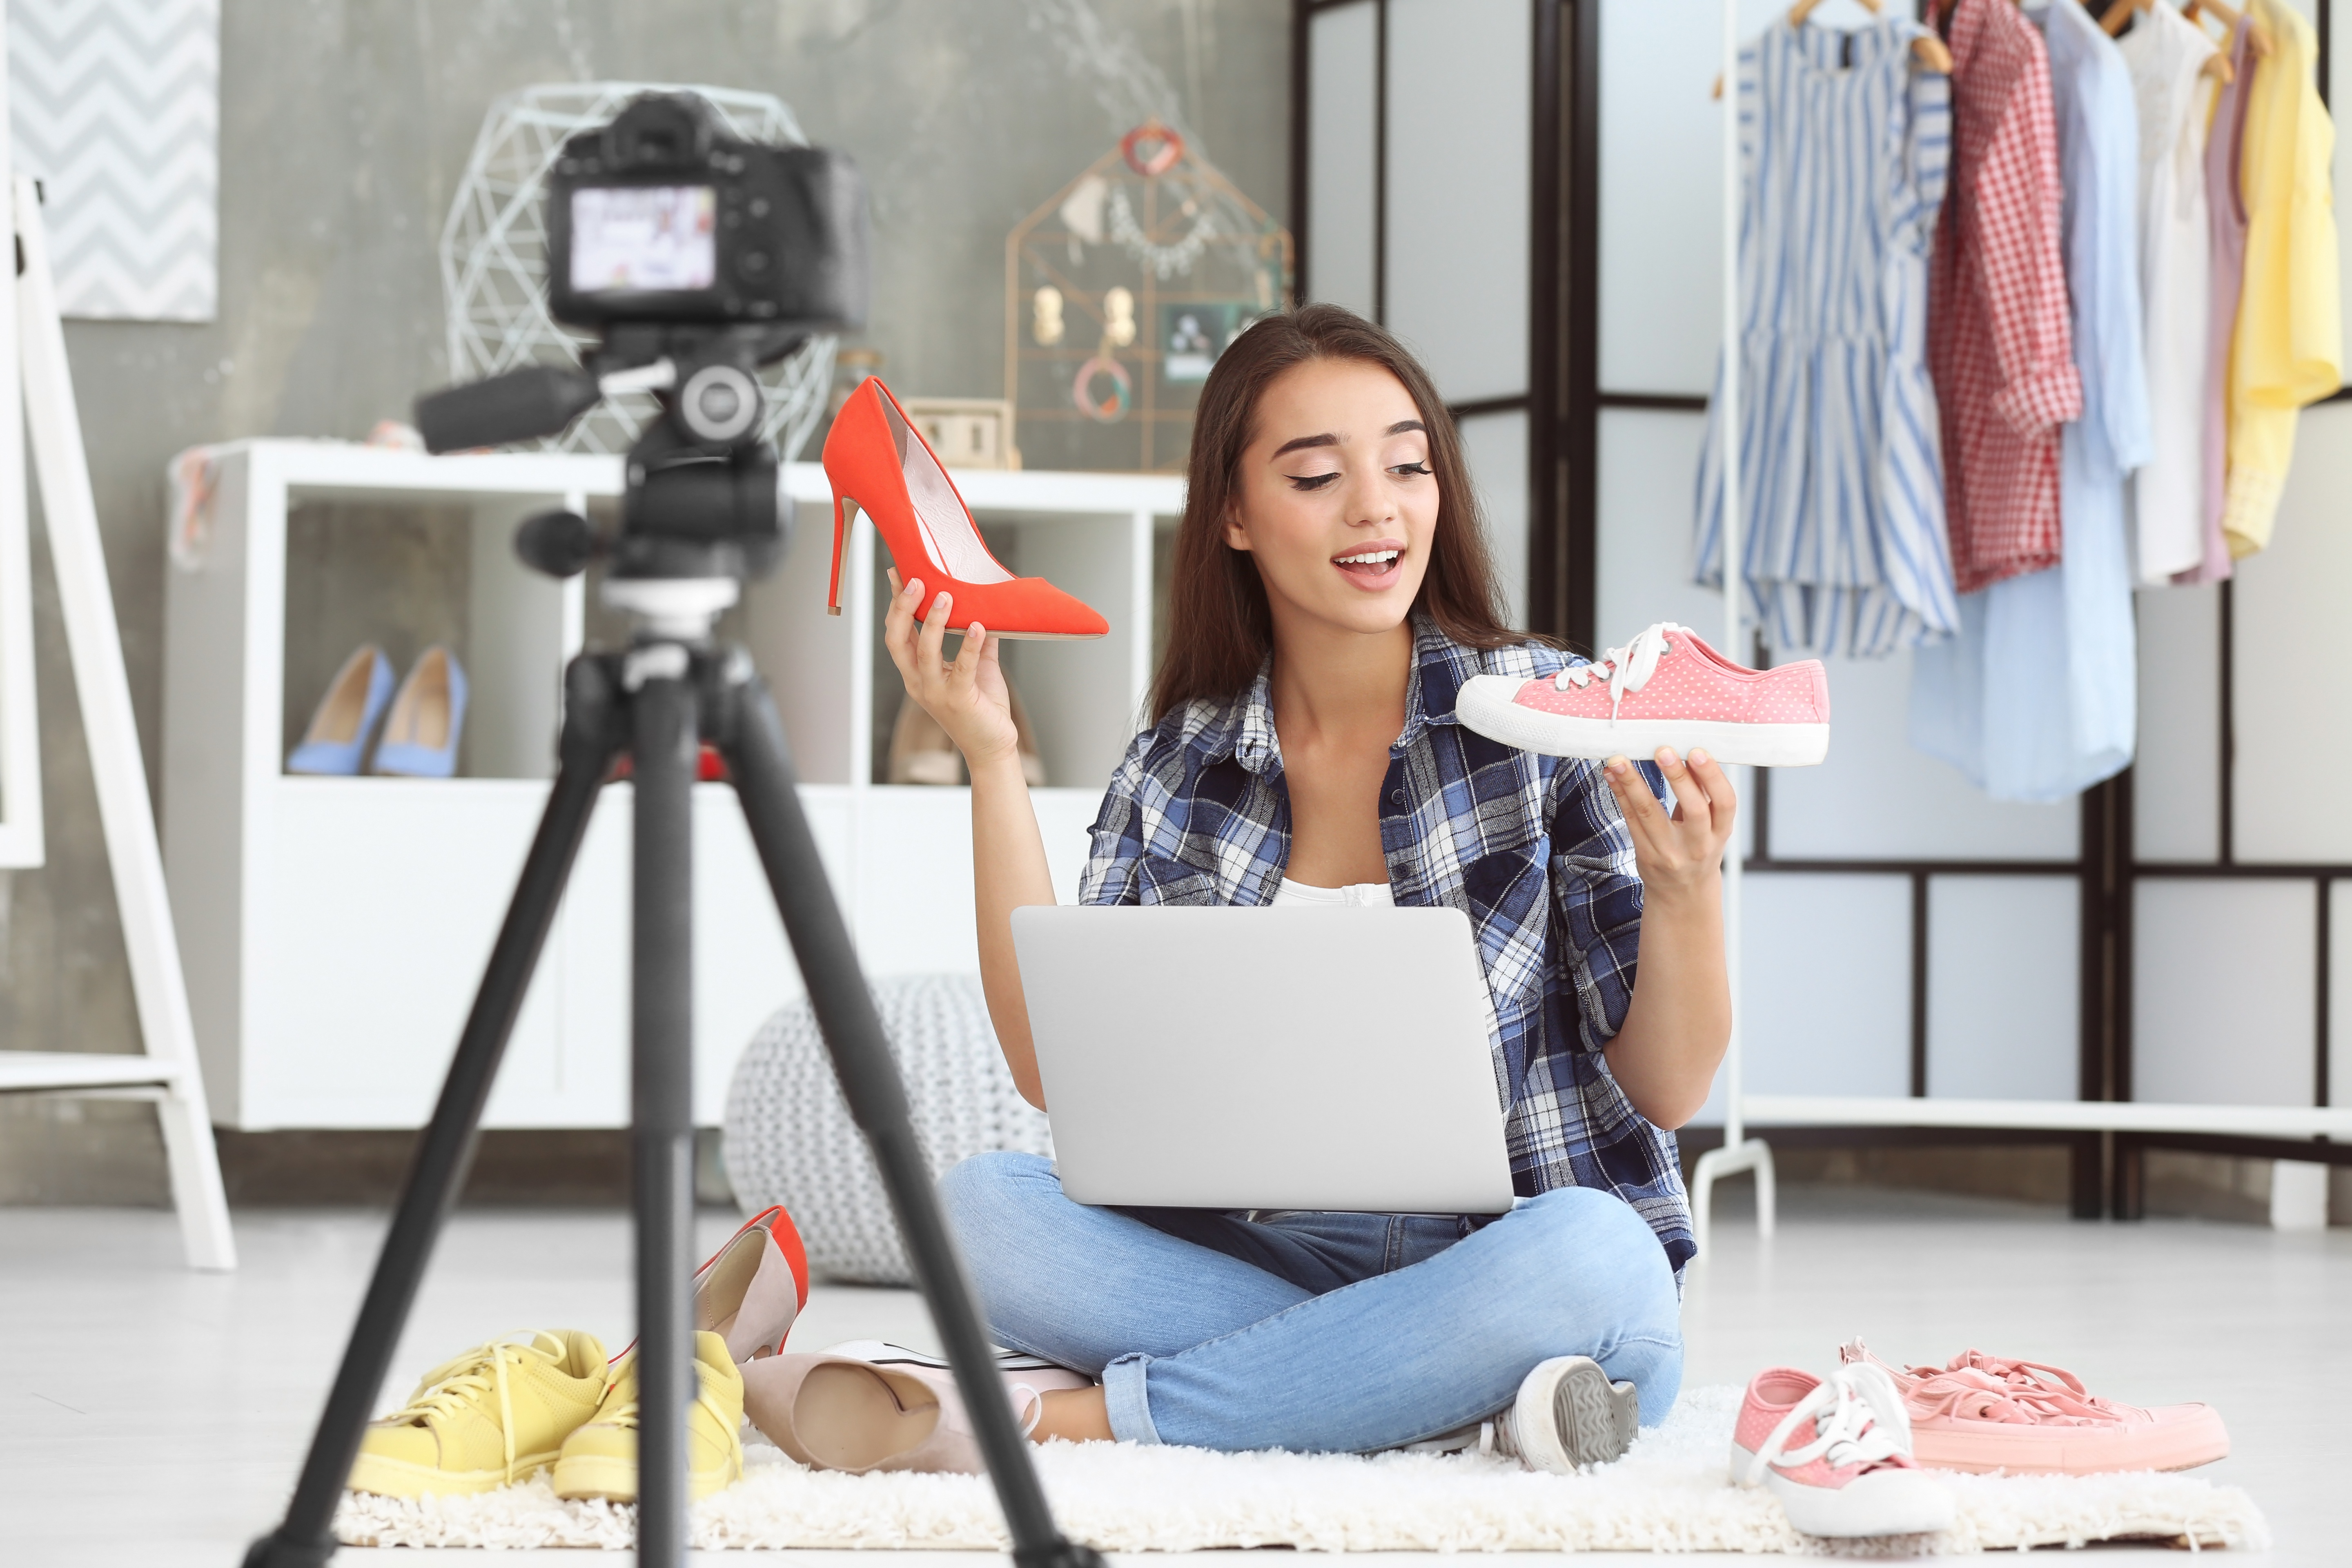 stock-photo-young-female-blogger-with-shoes-recording-video-at-home-720842107.jpg